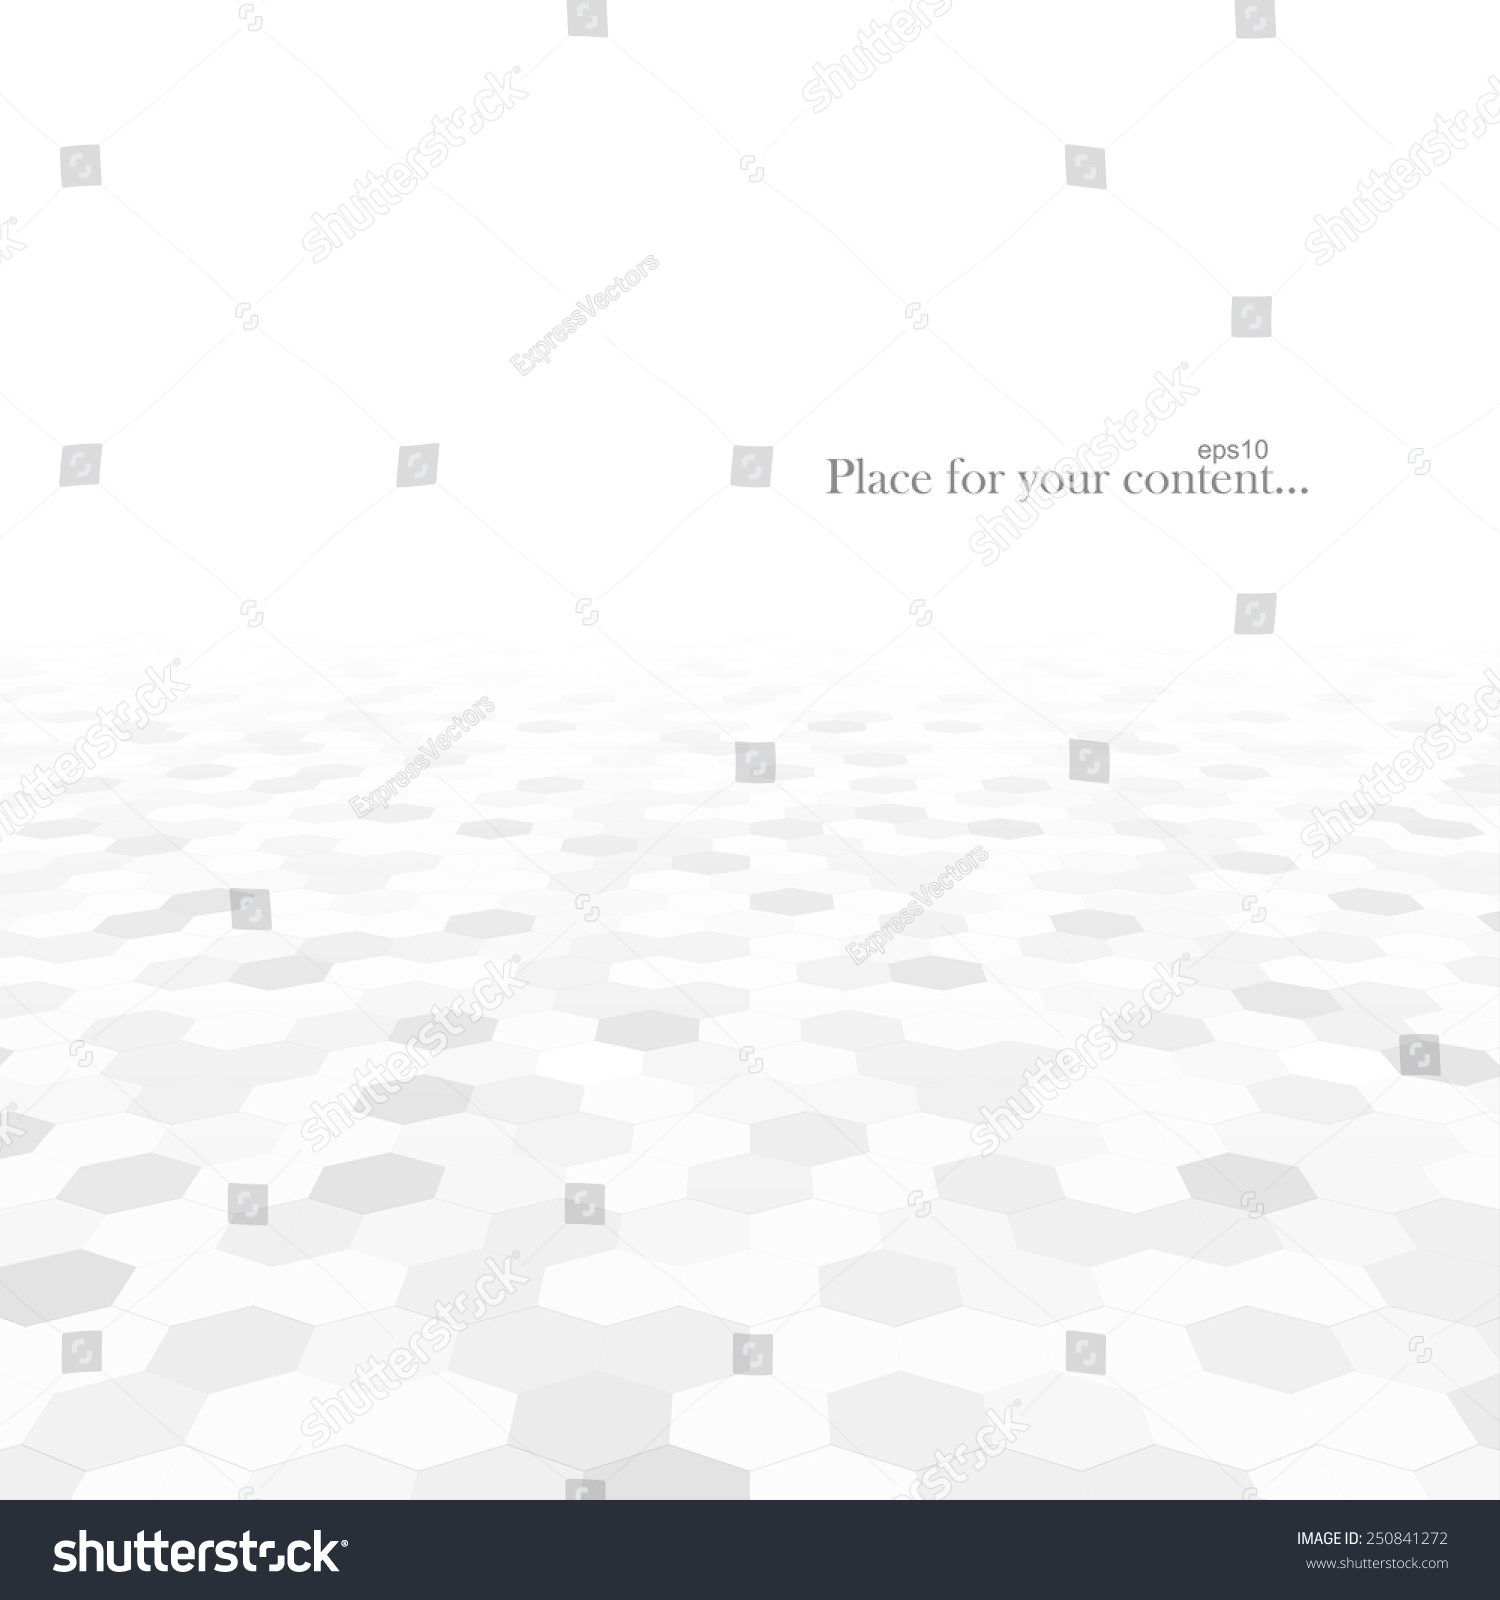 Abstract background with white shapes. White and grey texture. Vector illustration - eps10 #250841272